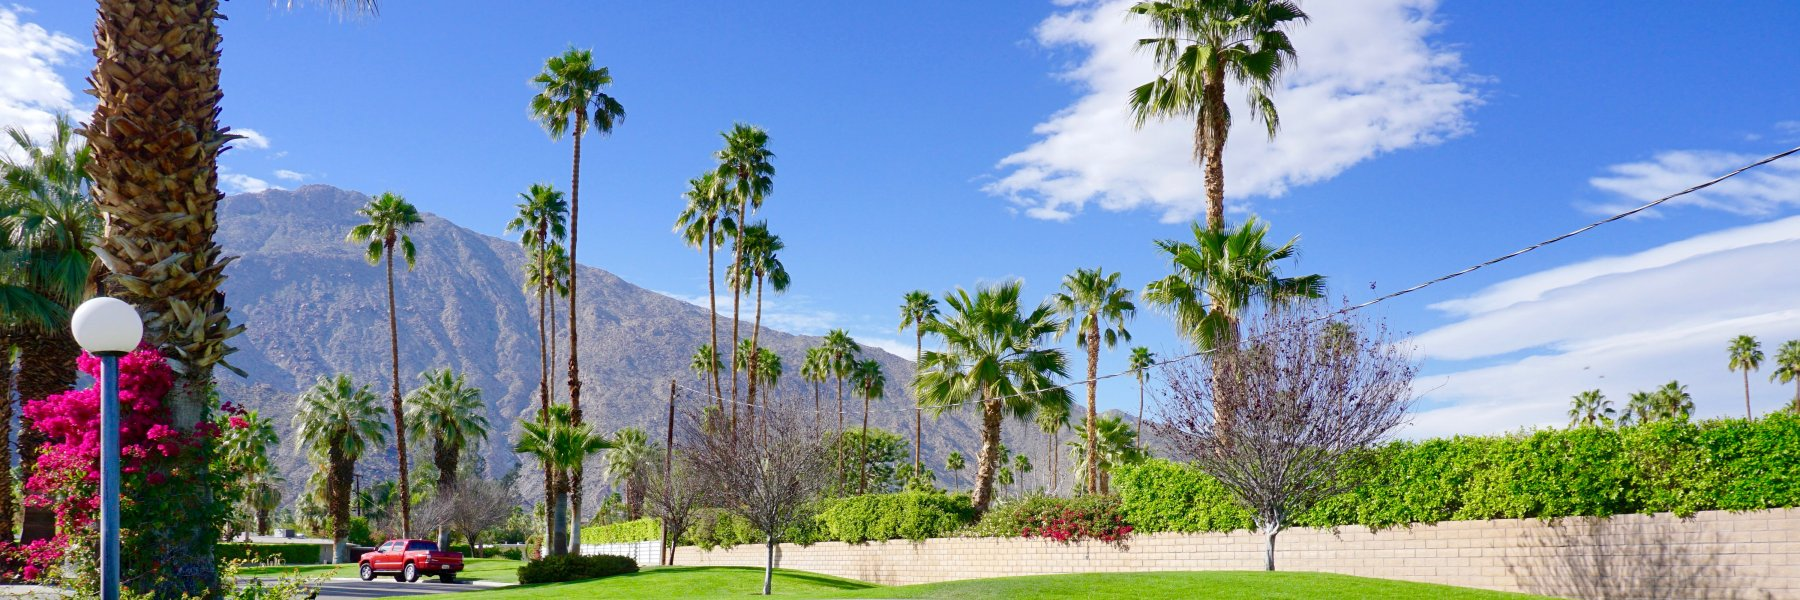 Biltmore is a community of homes in Palm Springs California